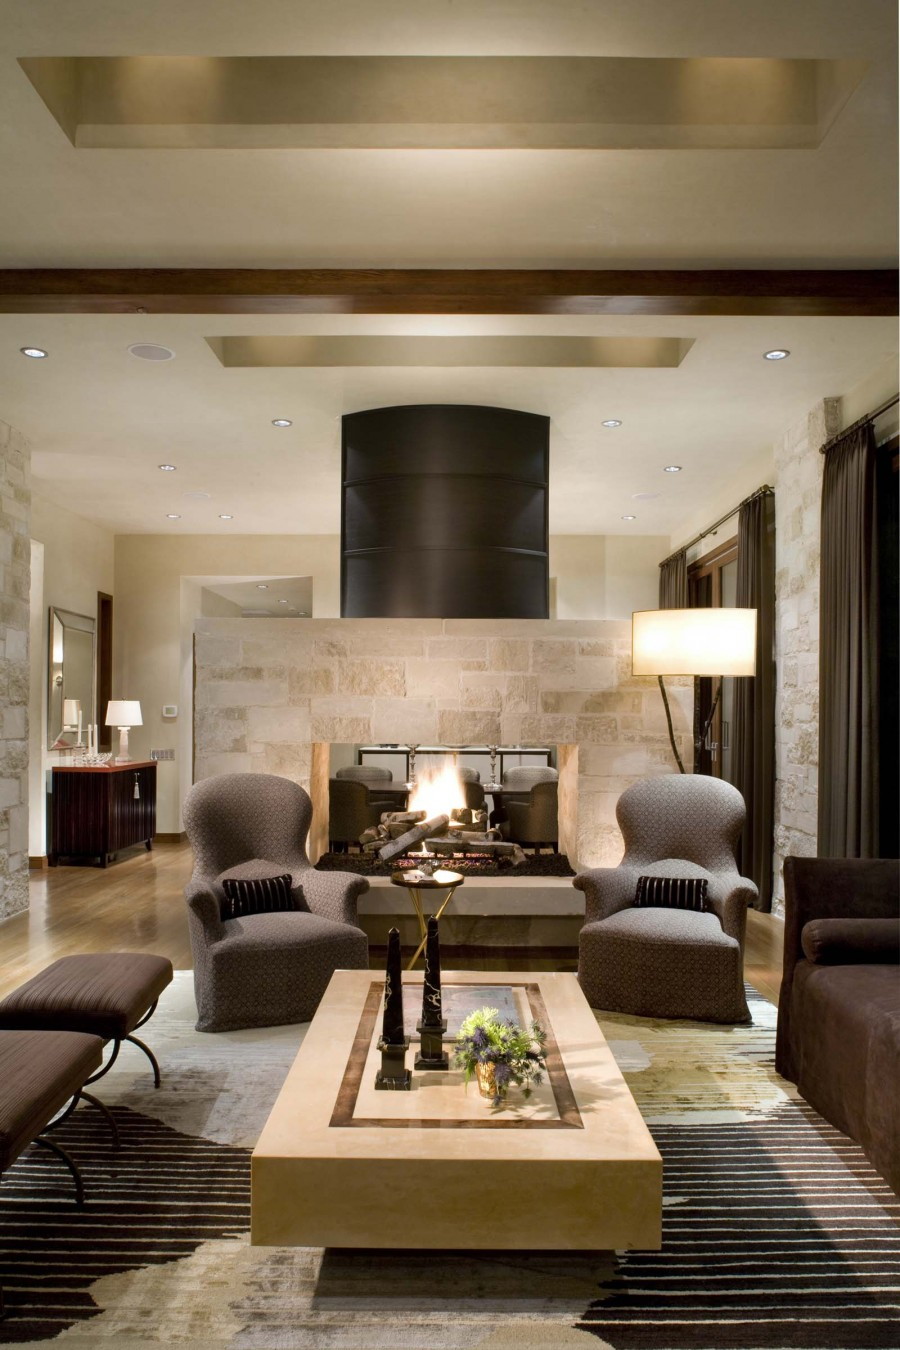 16 fabulous earth tones living room designs decoholic for Room interior design ideas